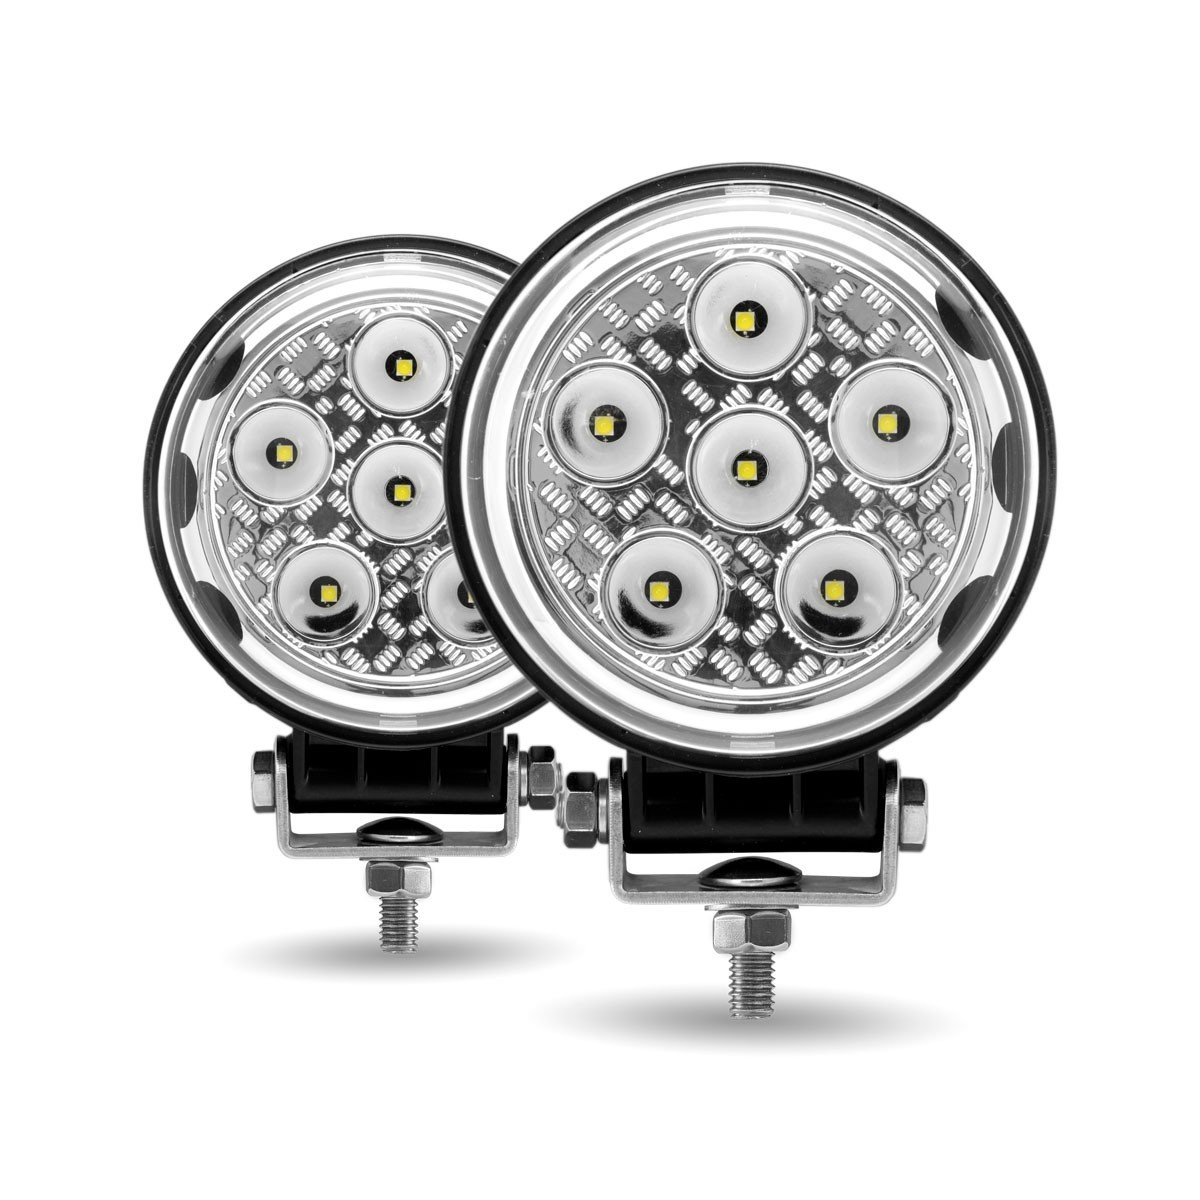 "4.5"" Round 'Radiant Series' High Power LED Spot And Flood Beam Work Light Front"